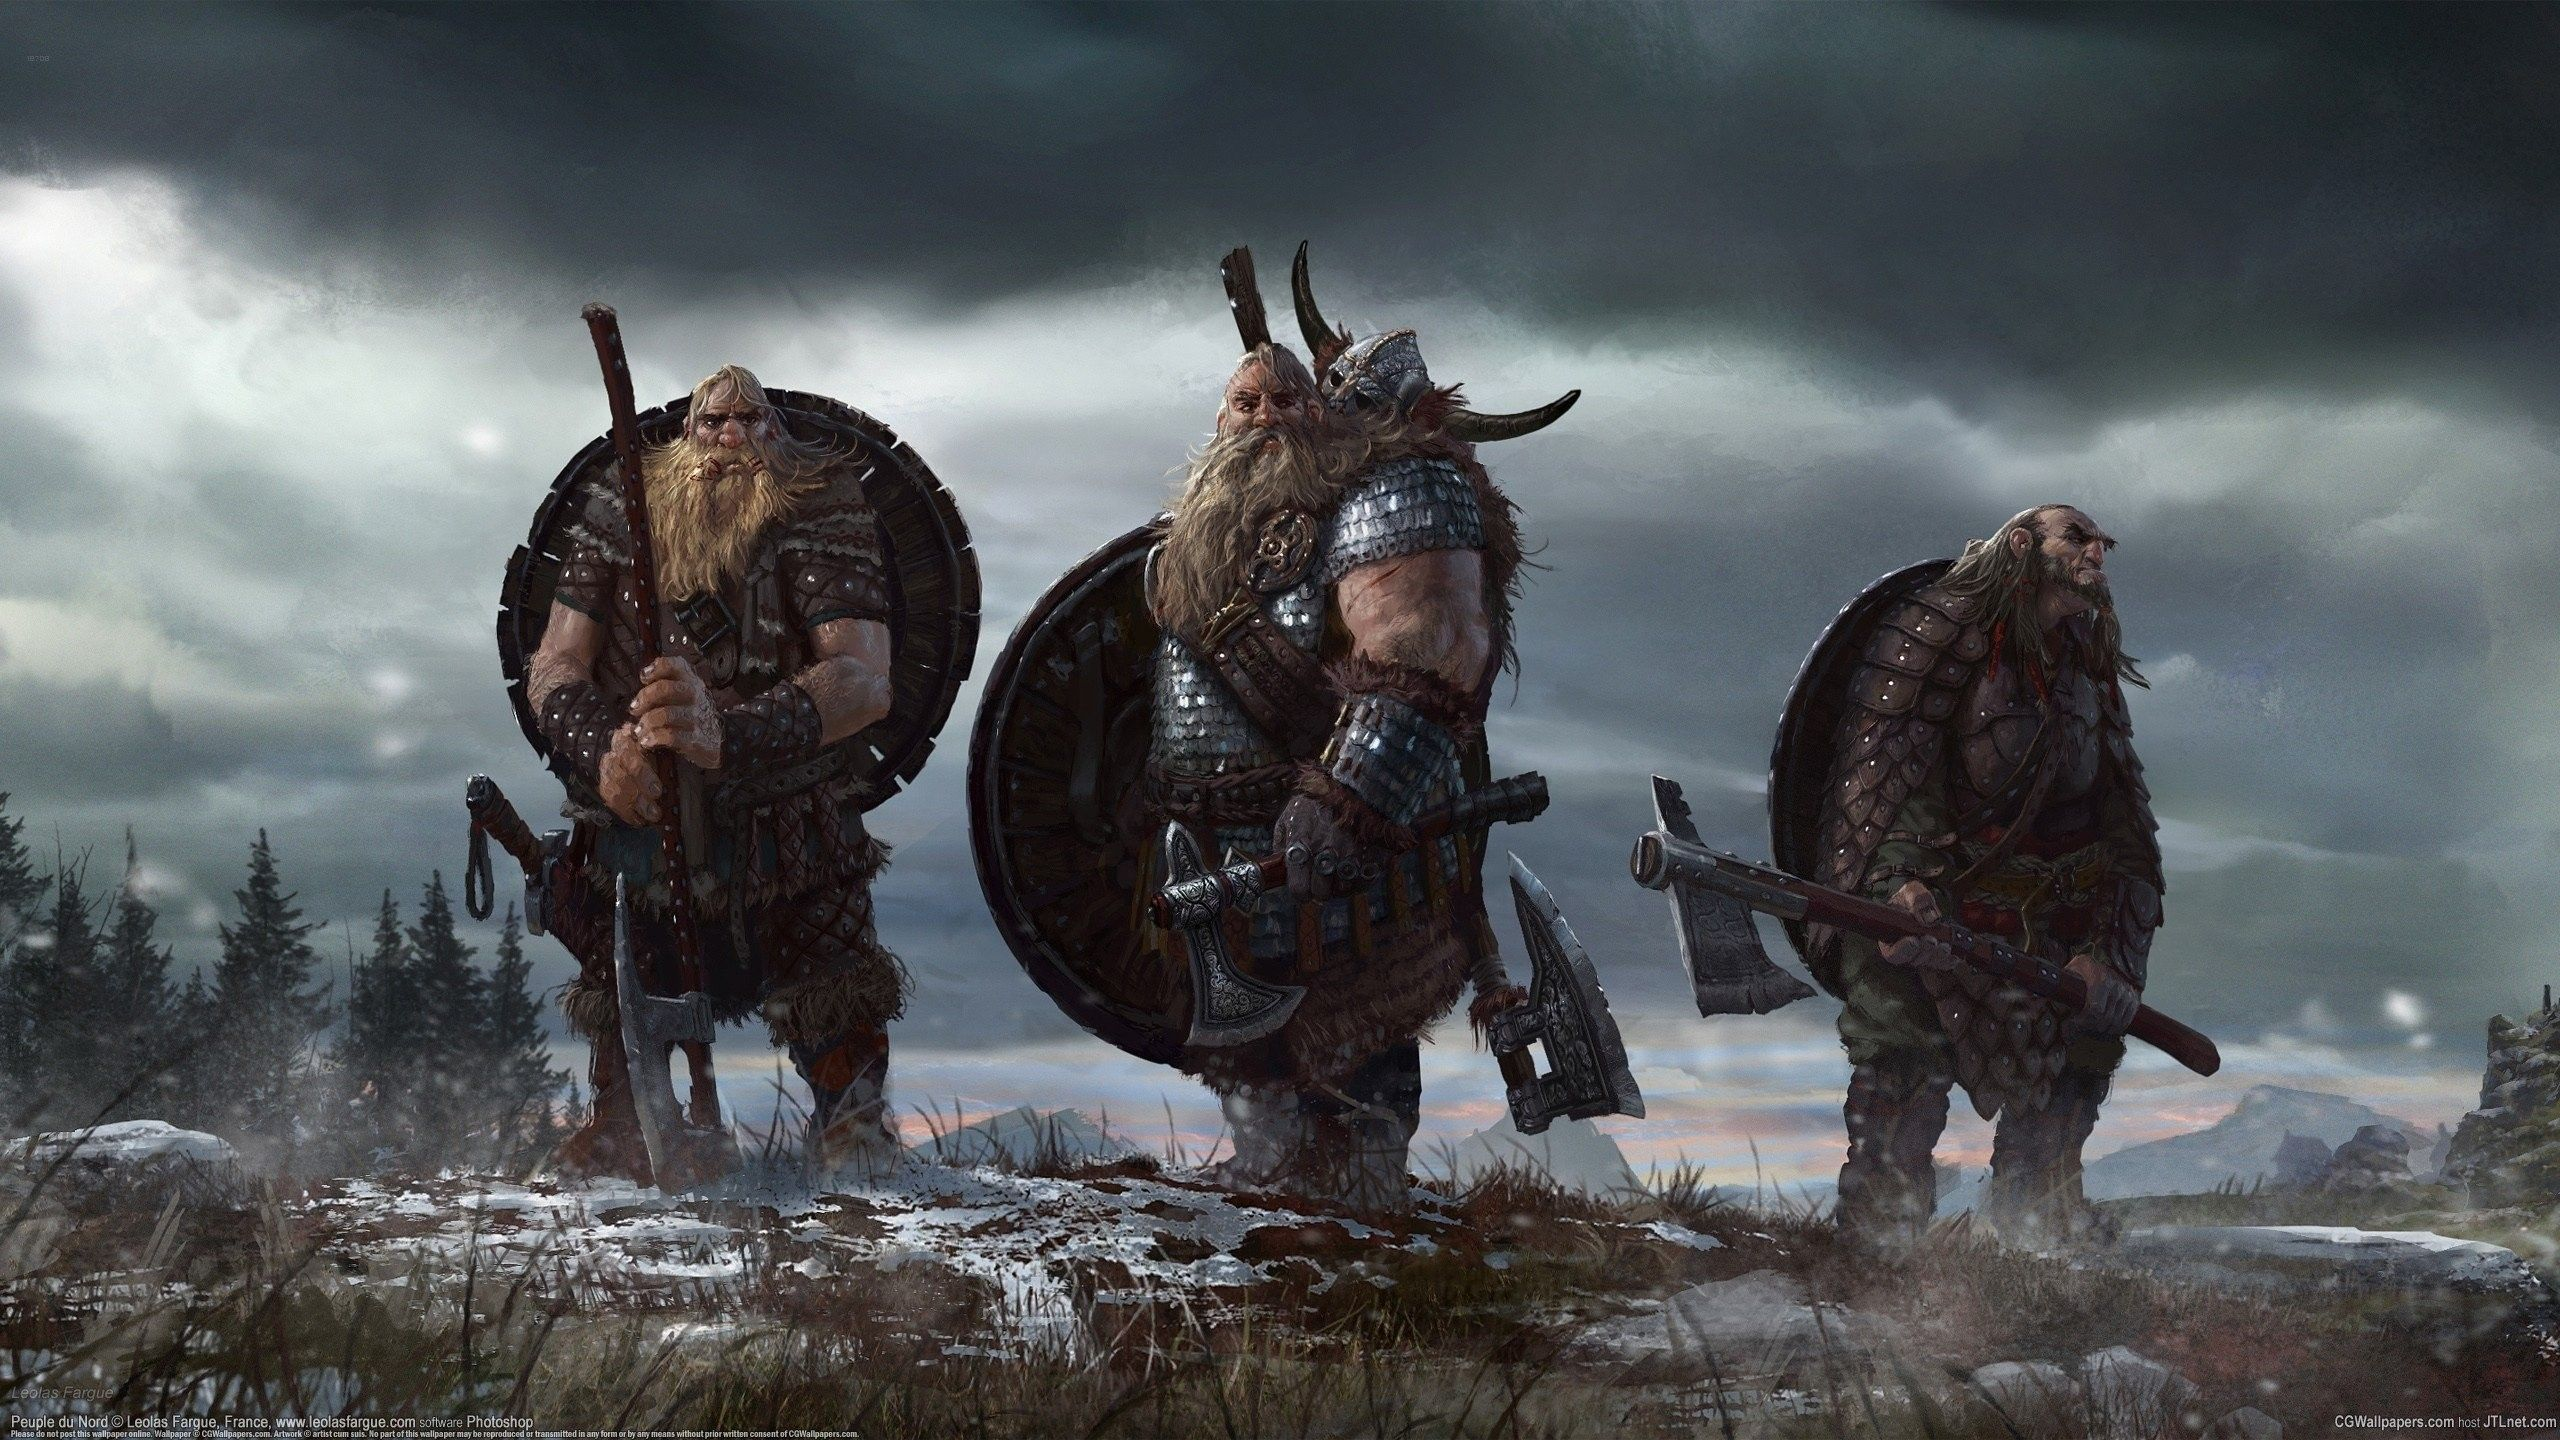 Viking Warrior Wallpapers   Top Viking Warrior Backgrounds 2560x1440